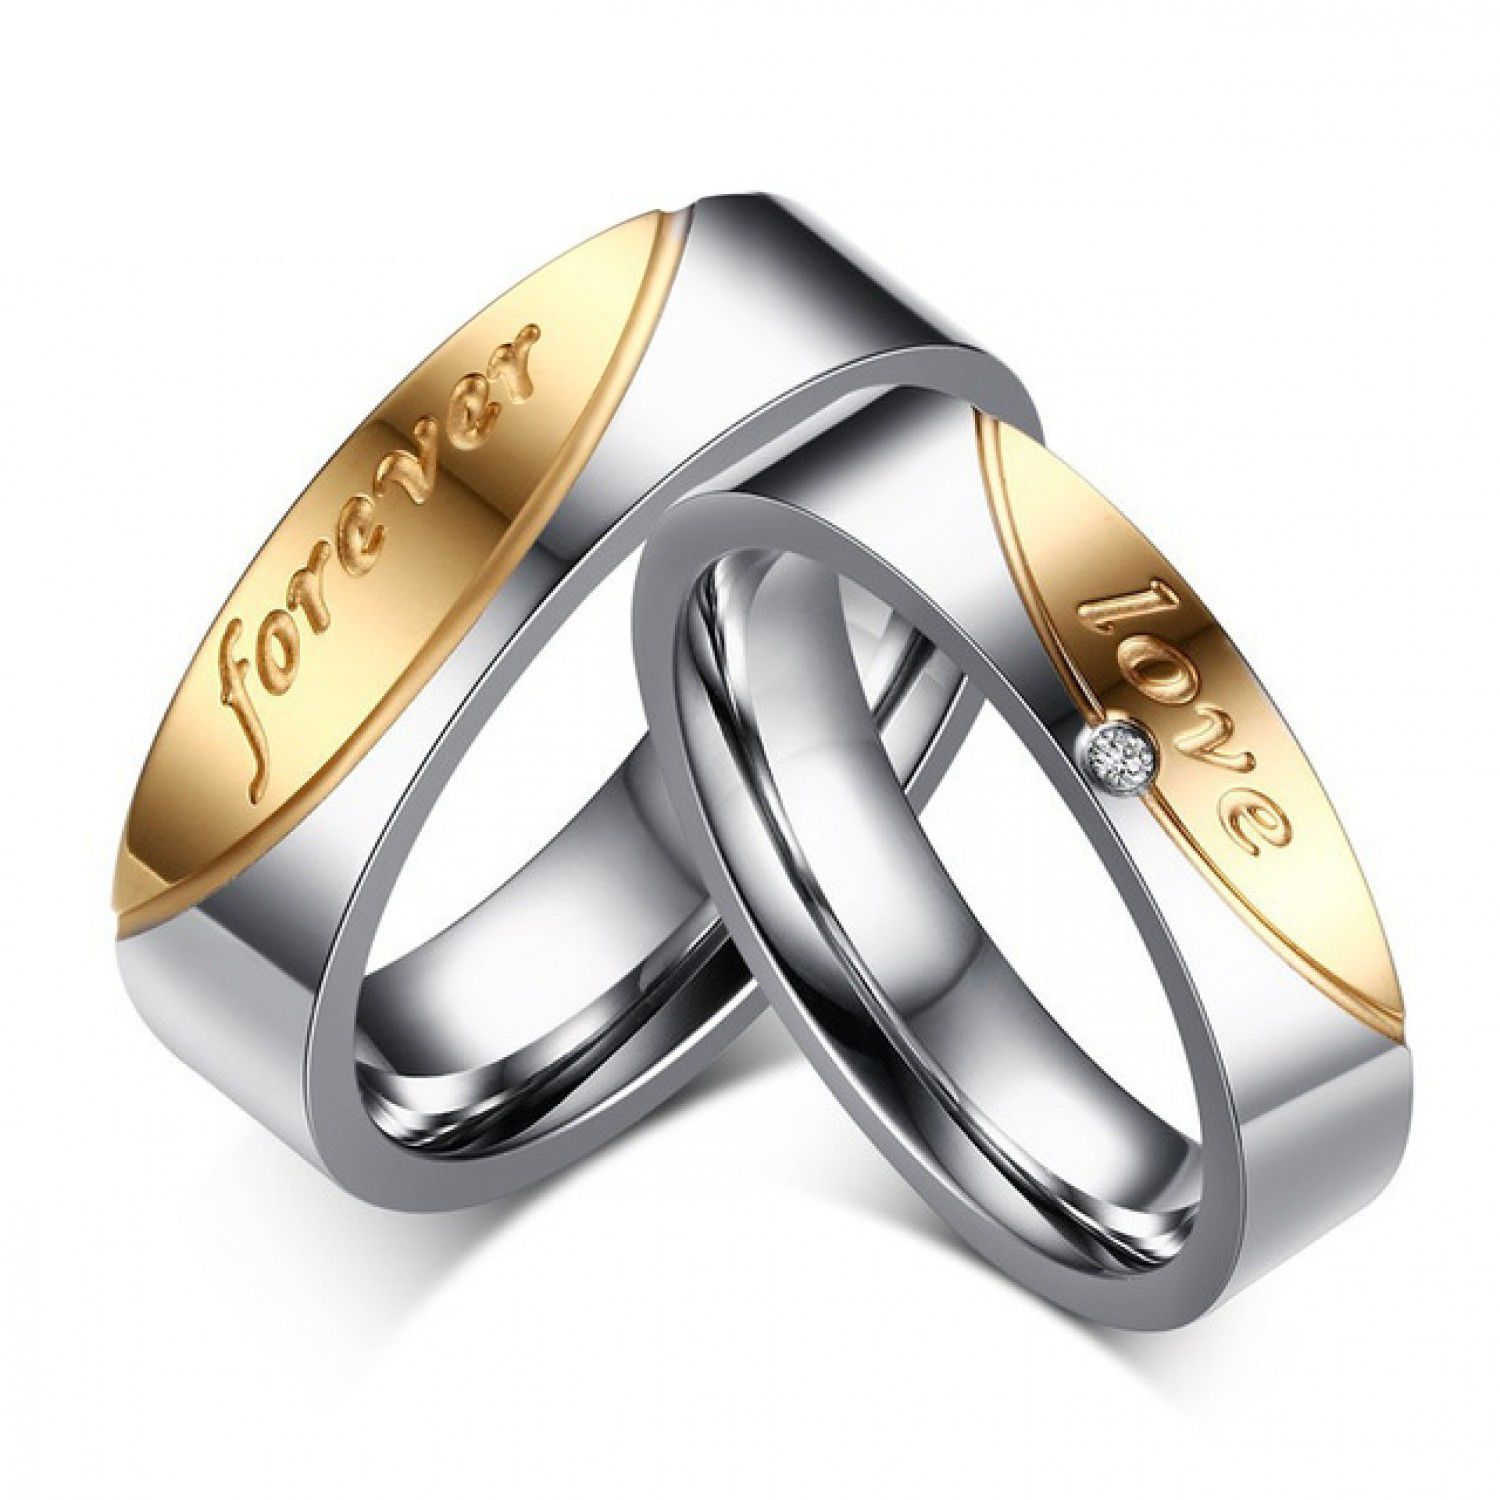 cacfdf1017 1 Pair Gift for Men Women Love Forever Couple Ring of Steel Cubic Zirconia  Jewelry Super Rings